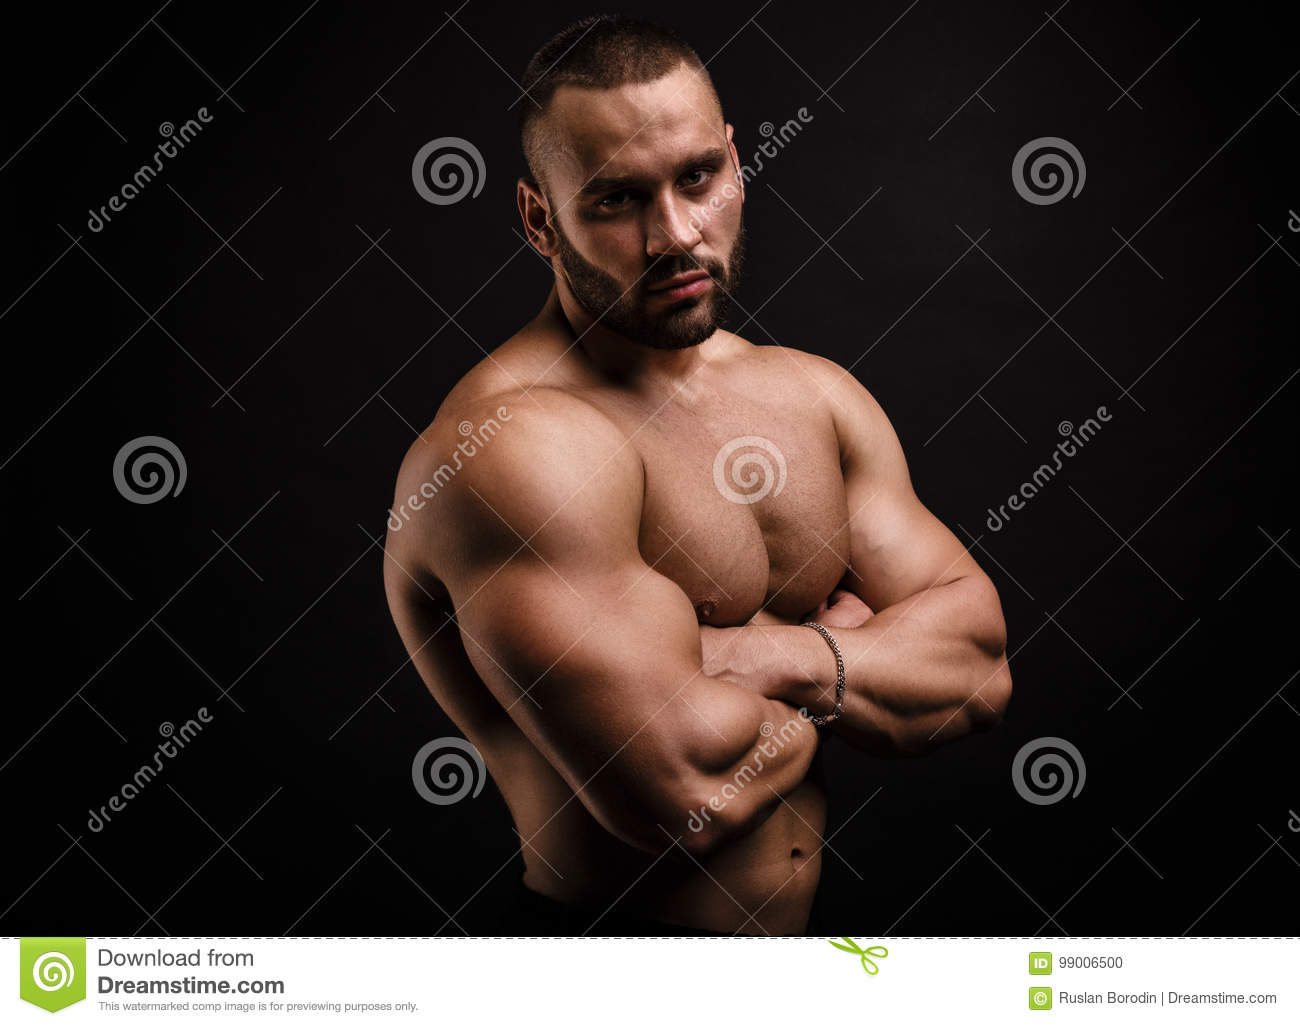 Serious And Shirtless Bodybuilder Crossing Hands On A Muscular Chest